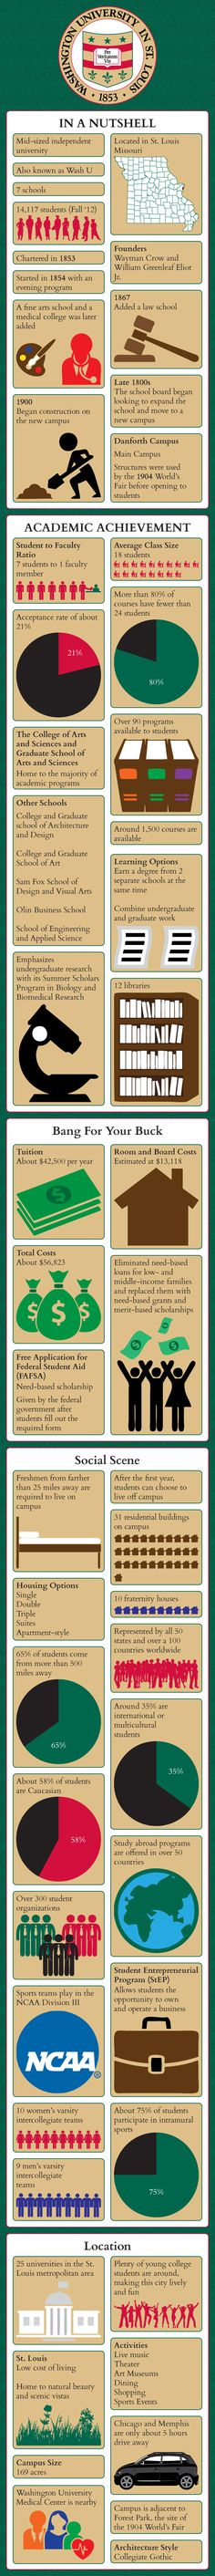 Washington University in St. Louis Infographic